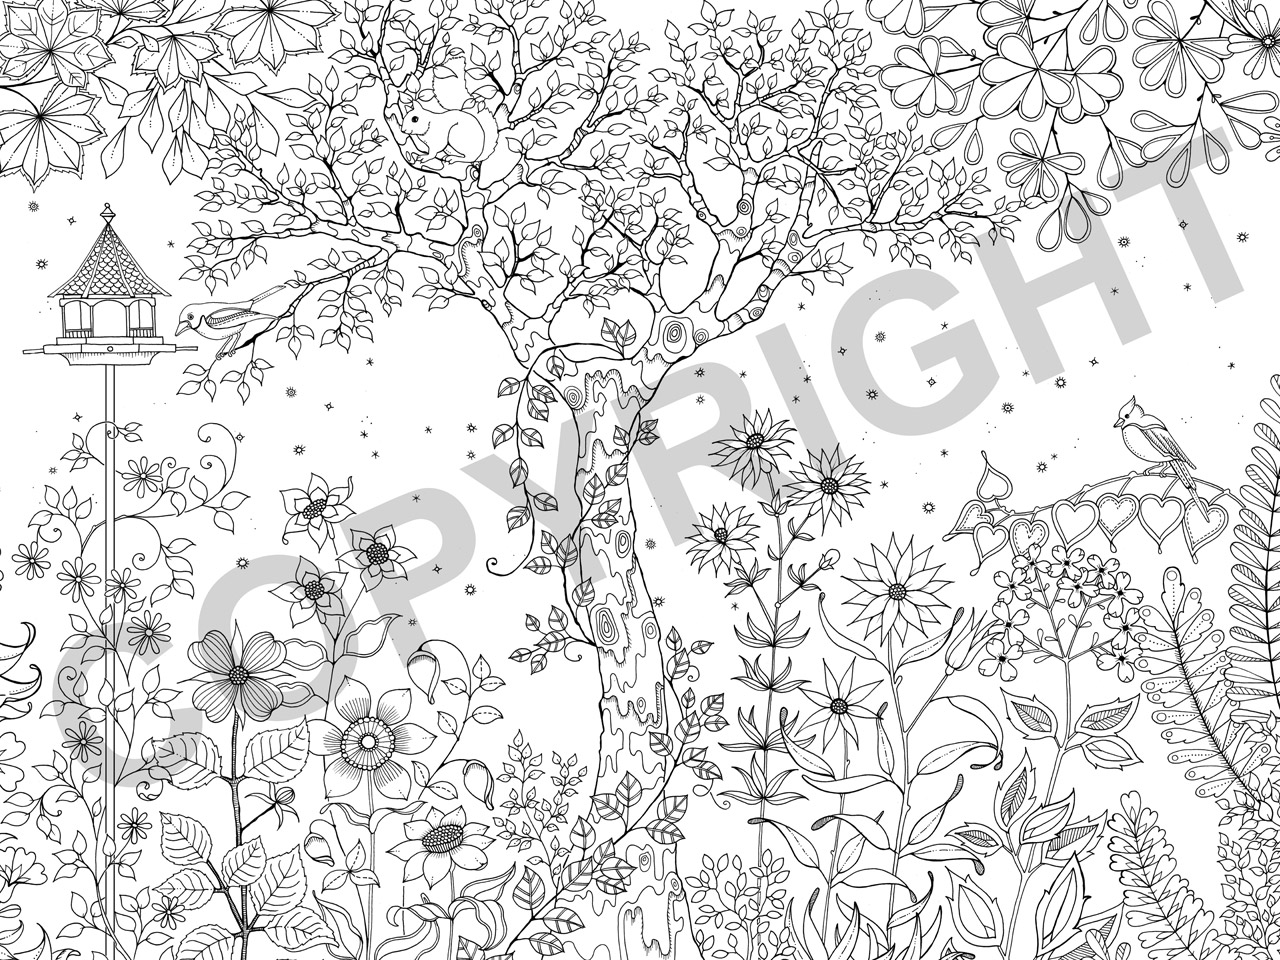 Secret Garden An Inky Treasure Hunt And Colouring Book By Johanna Basford Click To See Larger View